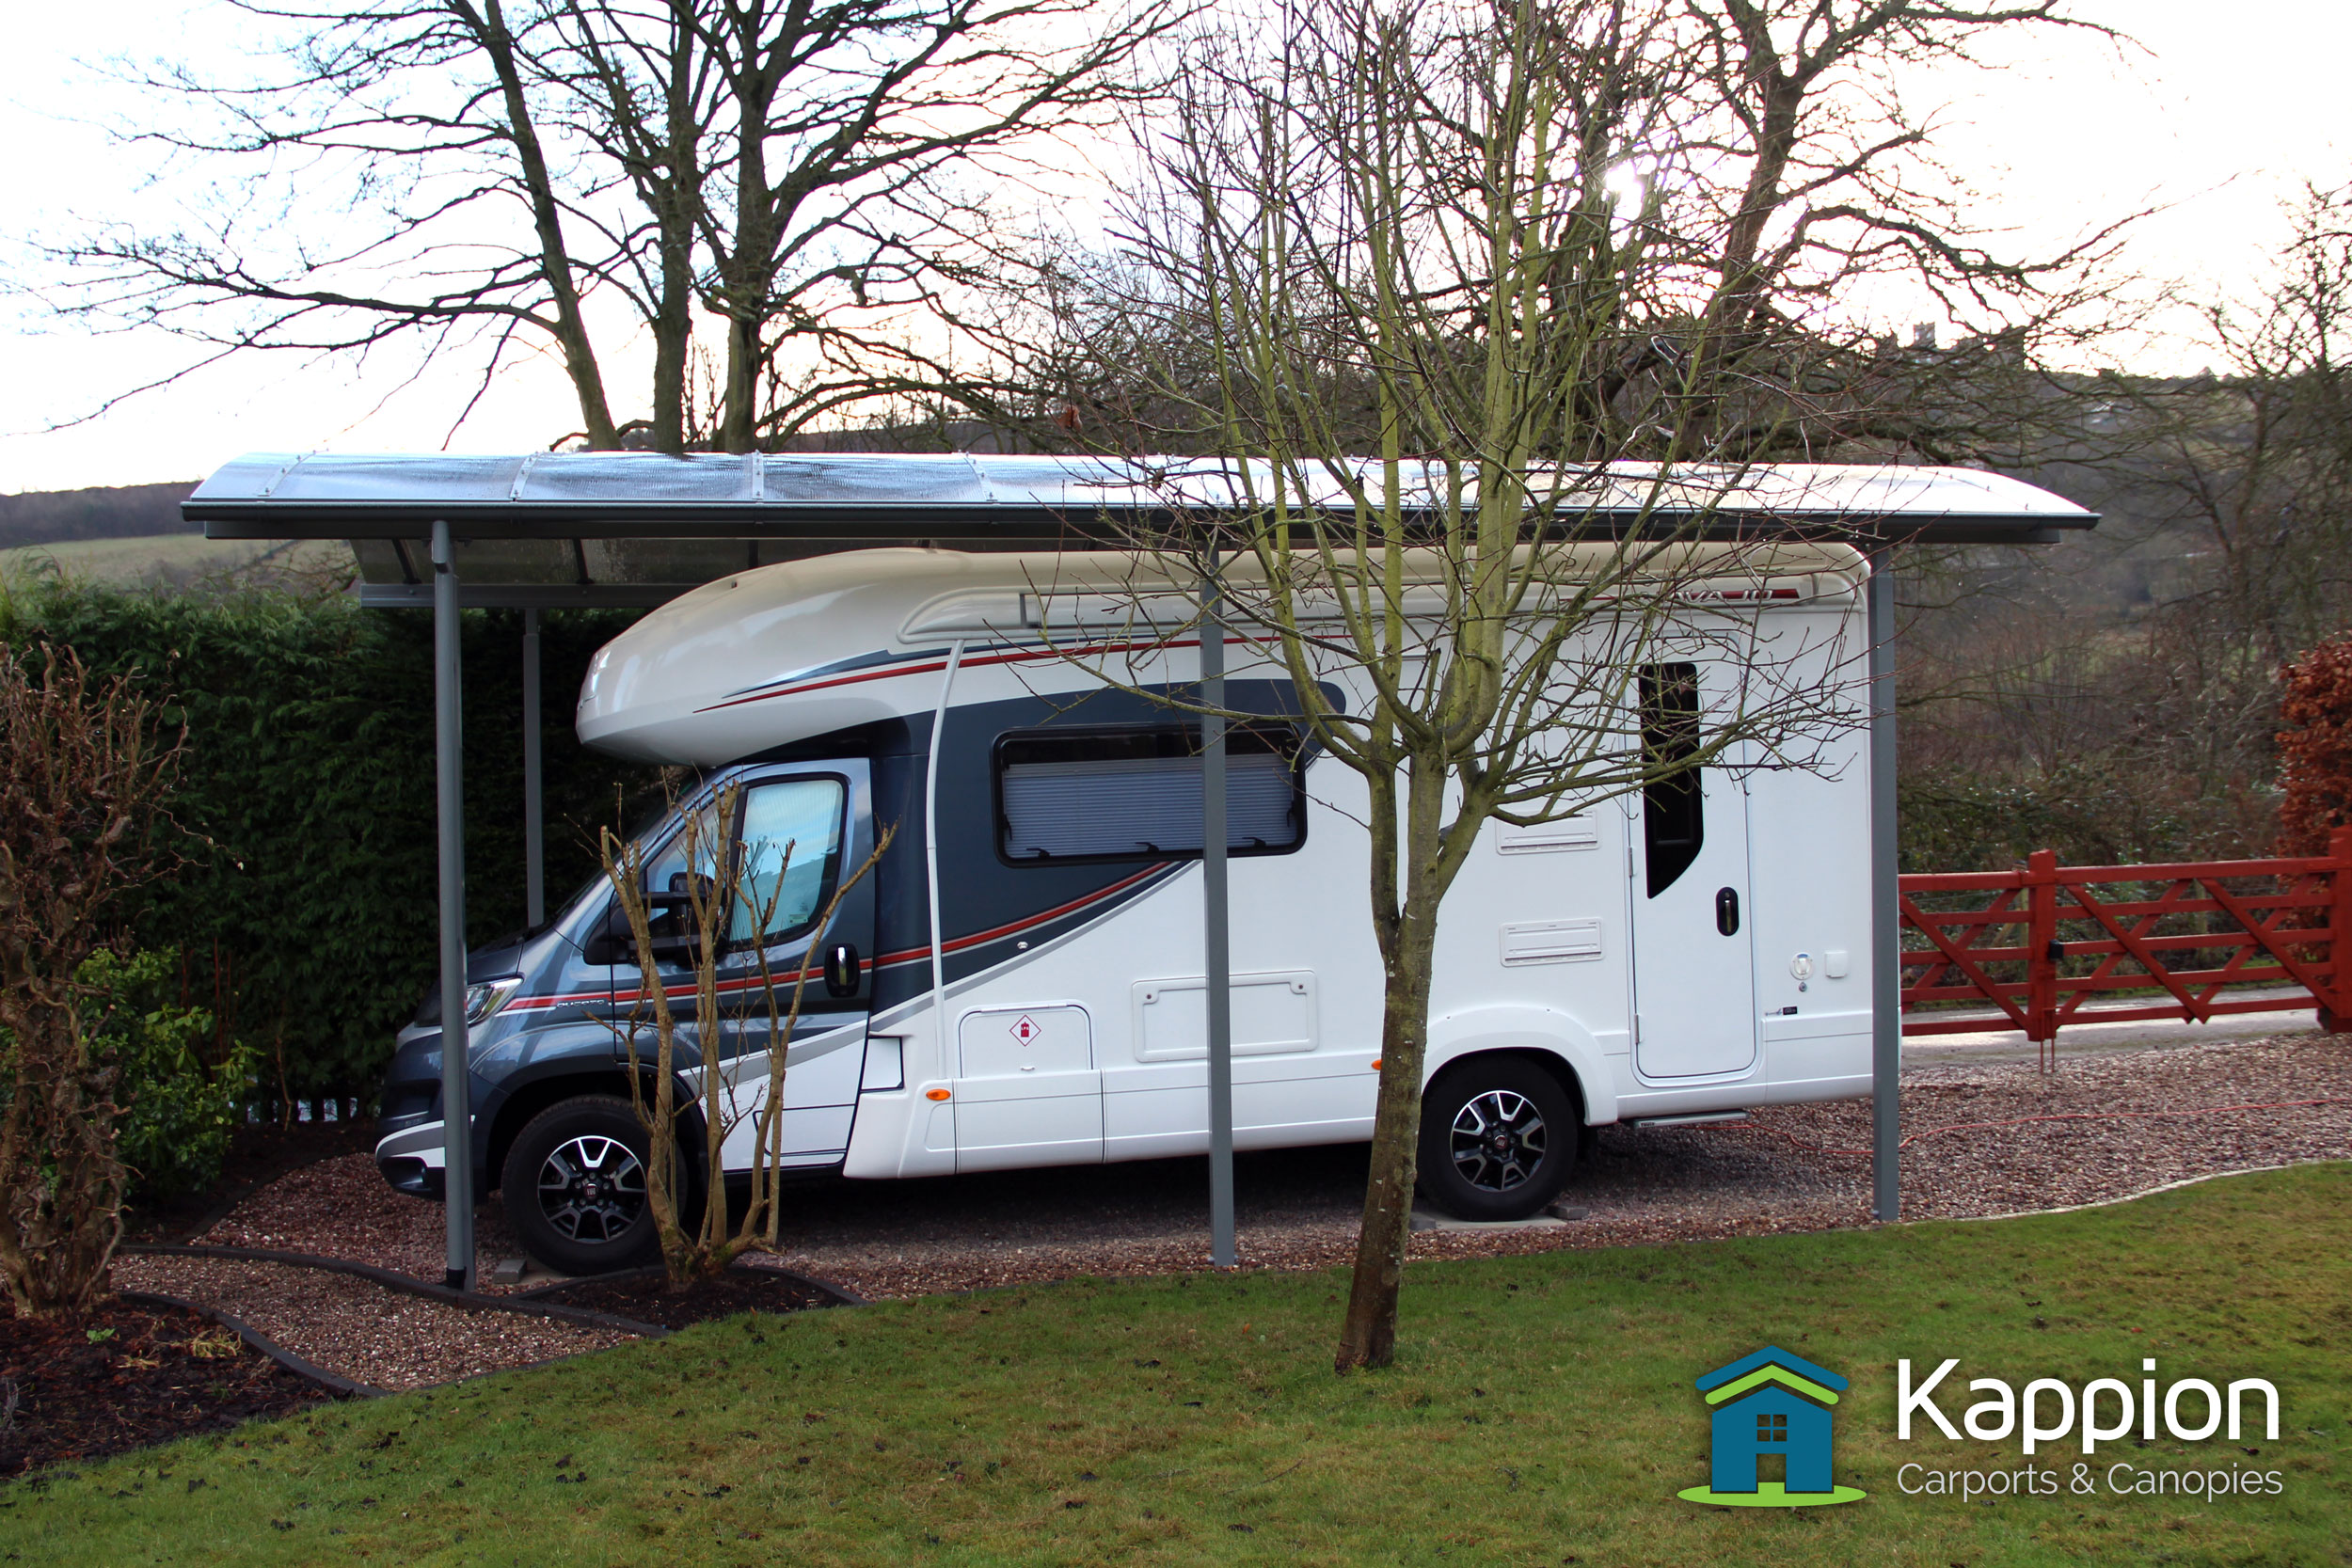 Motorhome canopy installed matlock kappion carports for Carports for motorhomes